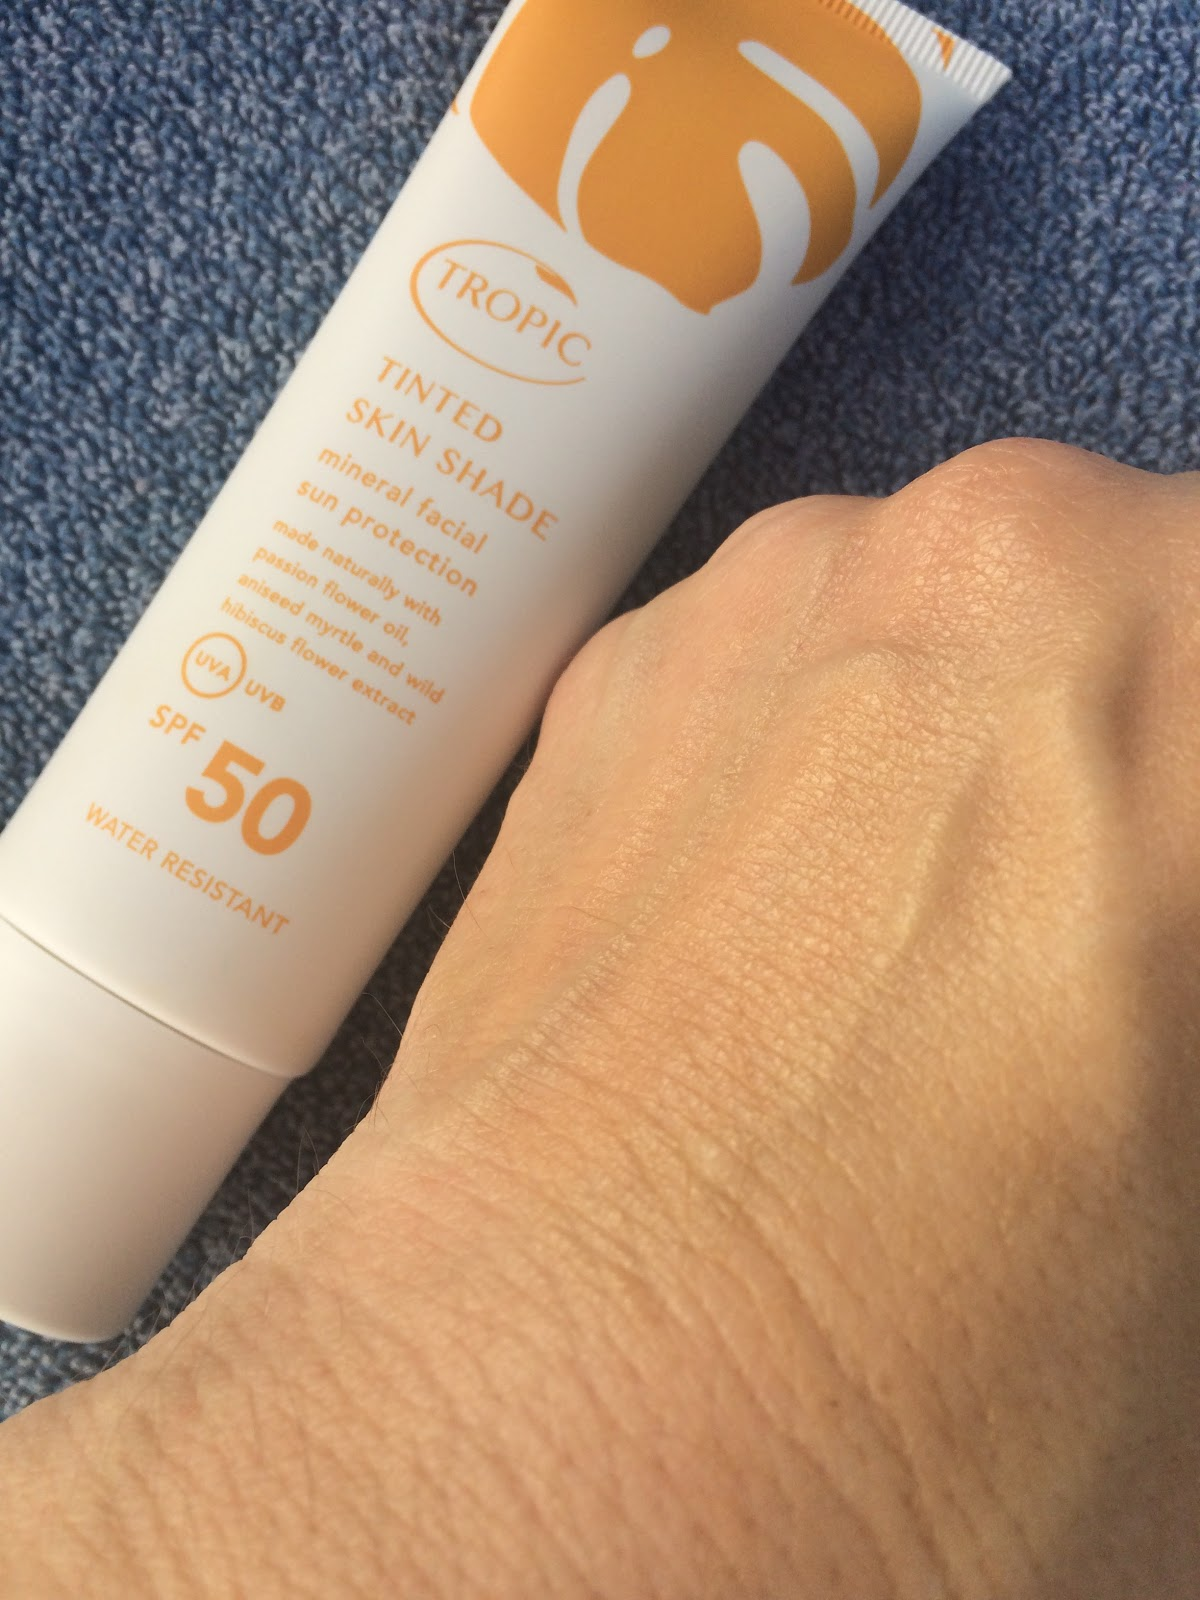 Tropic Skin Care Tinted Skin Shade blended into the hand